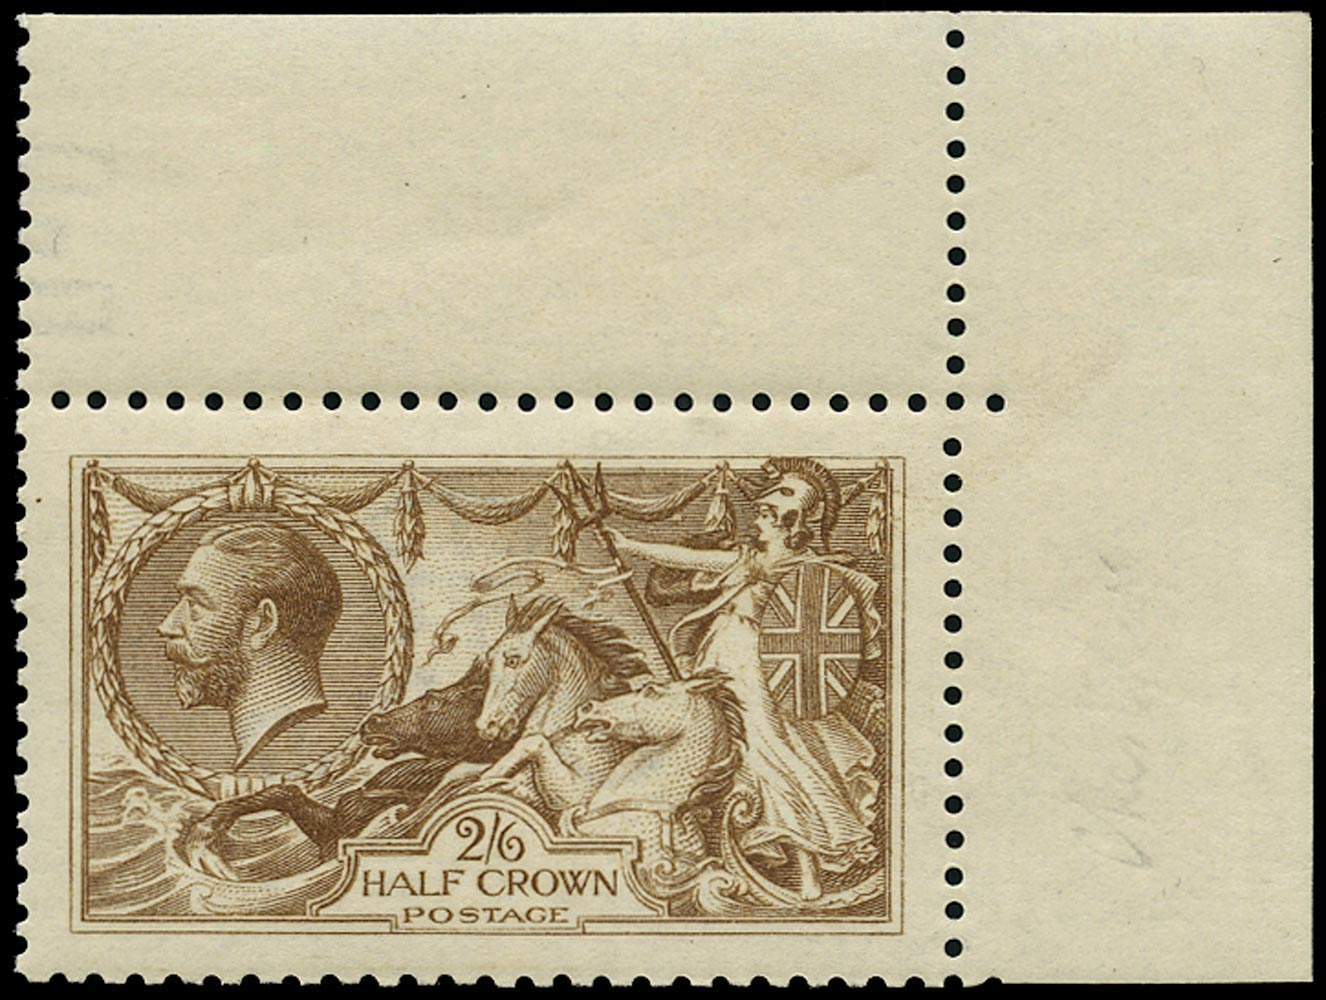 GB 1915  SG406 Mint - unmounted o.g. example